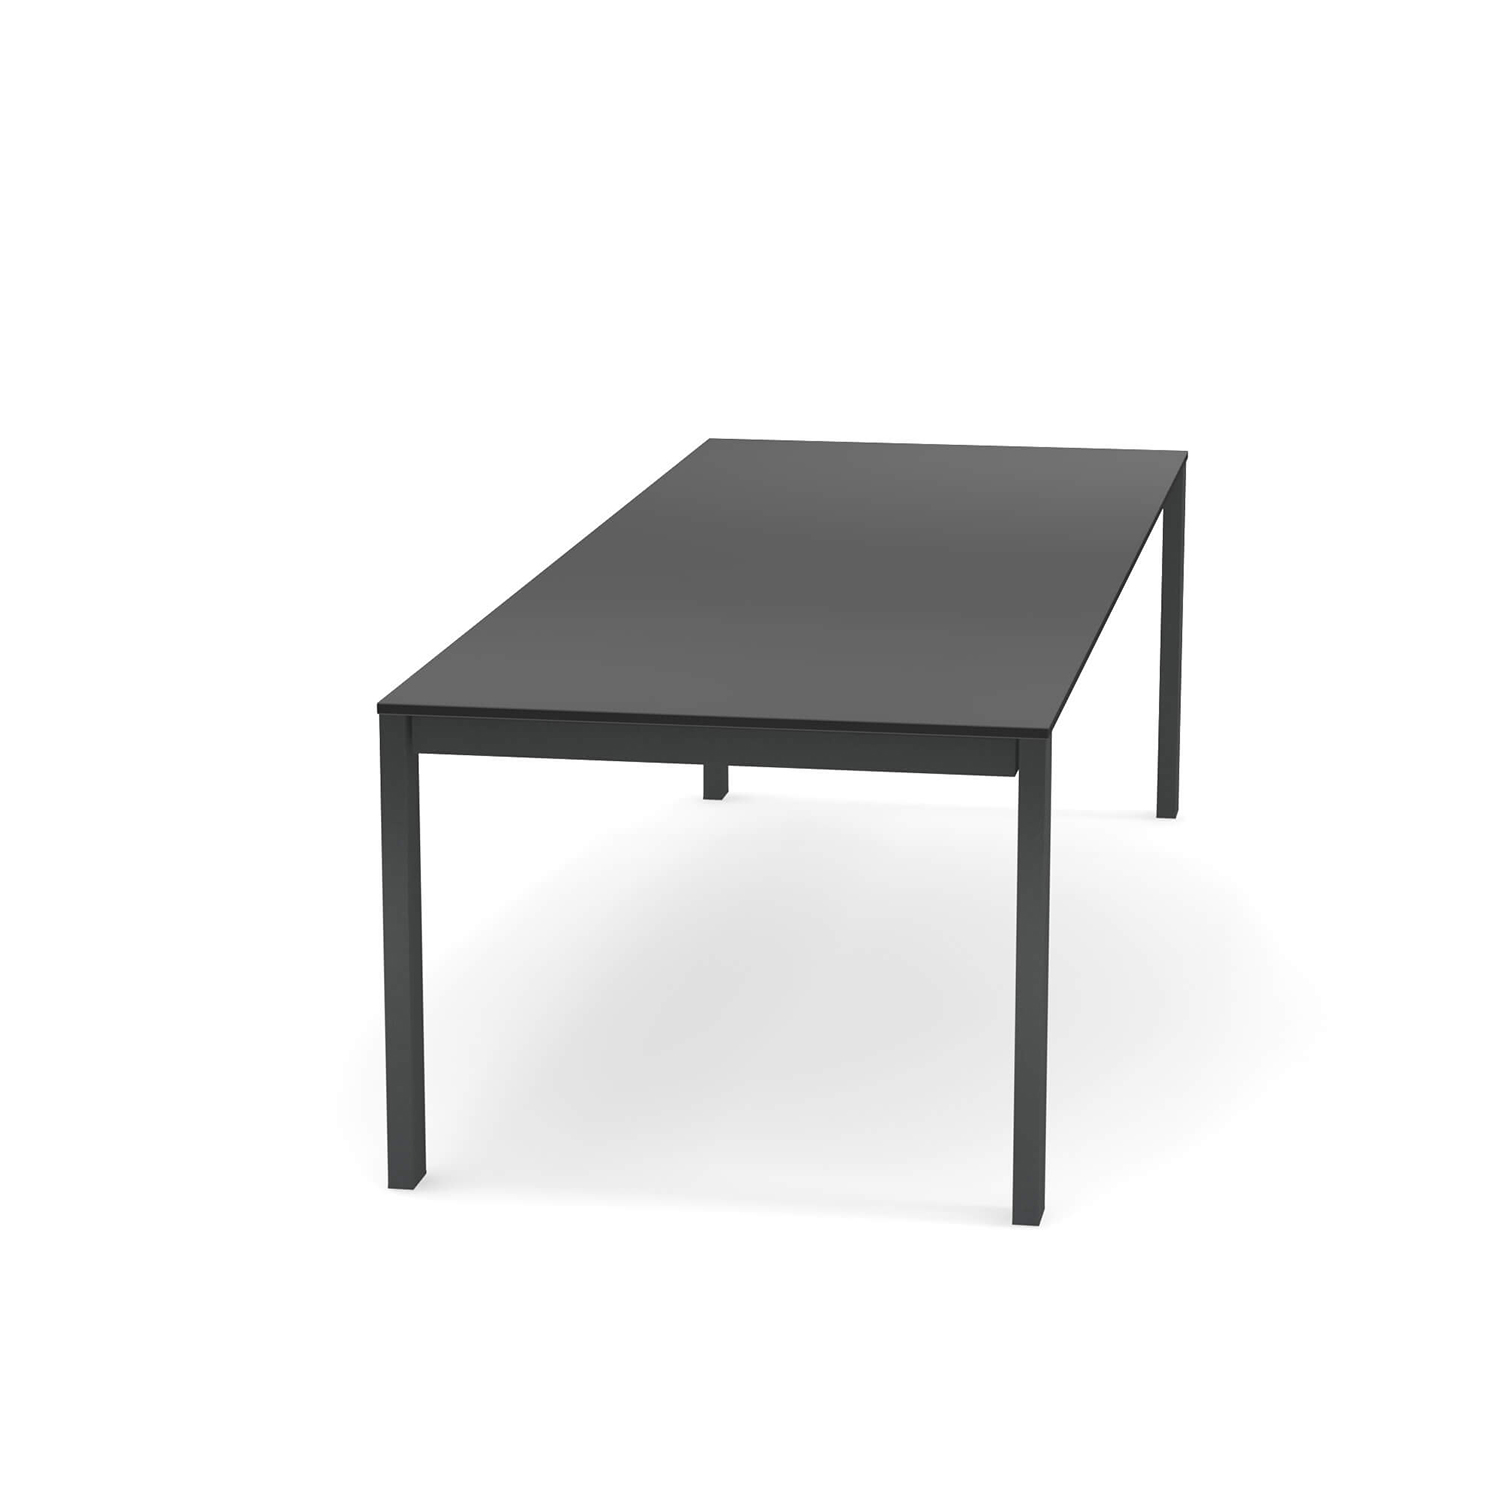 Round Extensible Table With HPL Top - The Round Extensible Table With HPL Top can be extended to suit your space or needs. The length it comes in is 160 cm but this can be extended +54 cm and then +54 cm again of needed. This tables comes in two finishes: Matt White Steel Frame with a White HPL top and Antique Iron Steel Frame with a Grey HPL top. Please refer to the Colours and Finishes attachment to see these colours. 